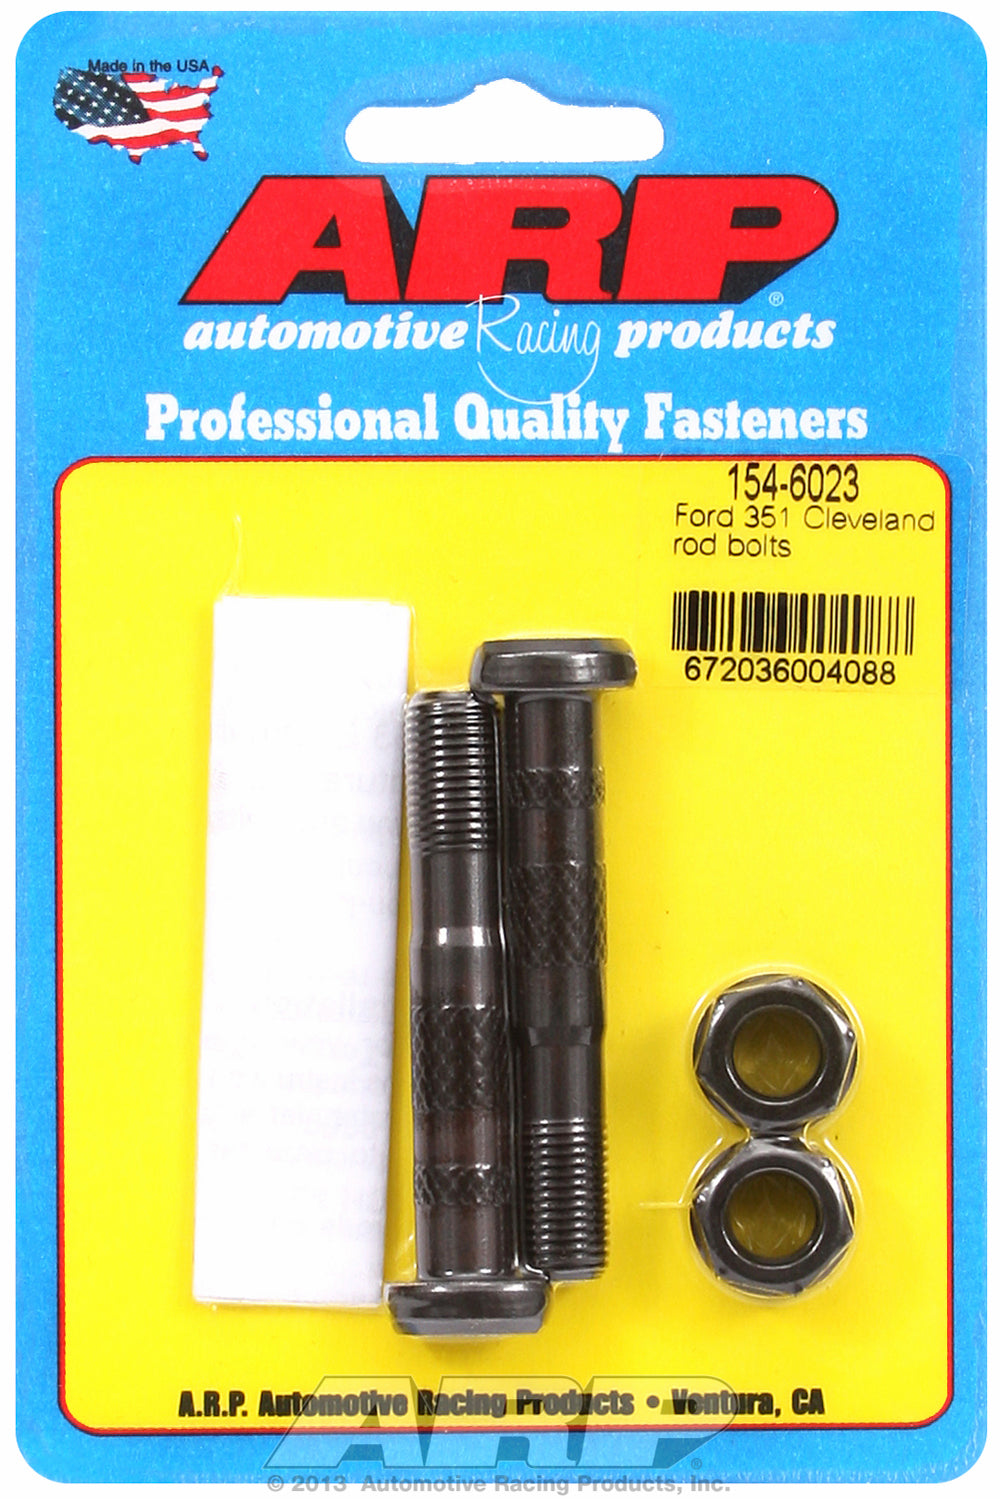 Hi-Perf 8740 (2-pc) Rod Bolt Kit for Ford 351 Cleveland